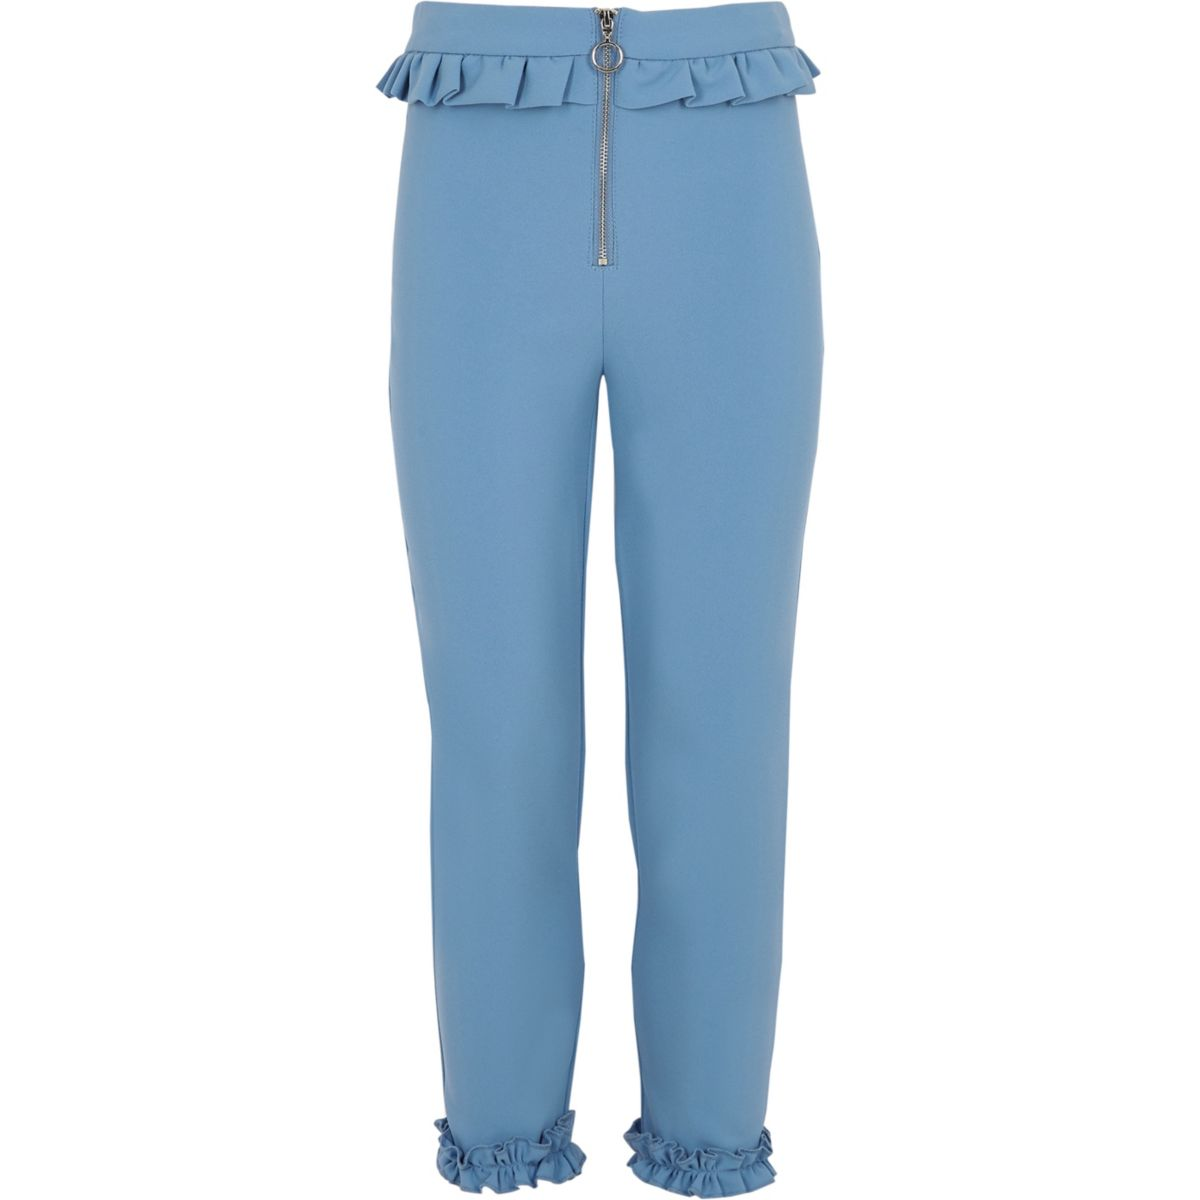 Girls blue frill zip cigarette trousers